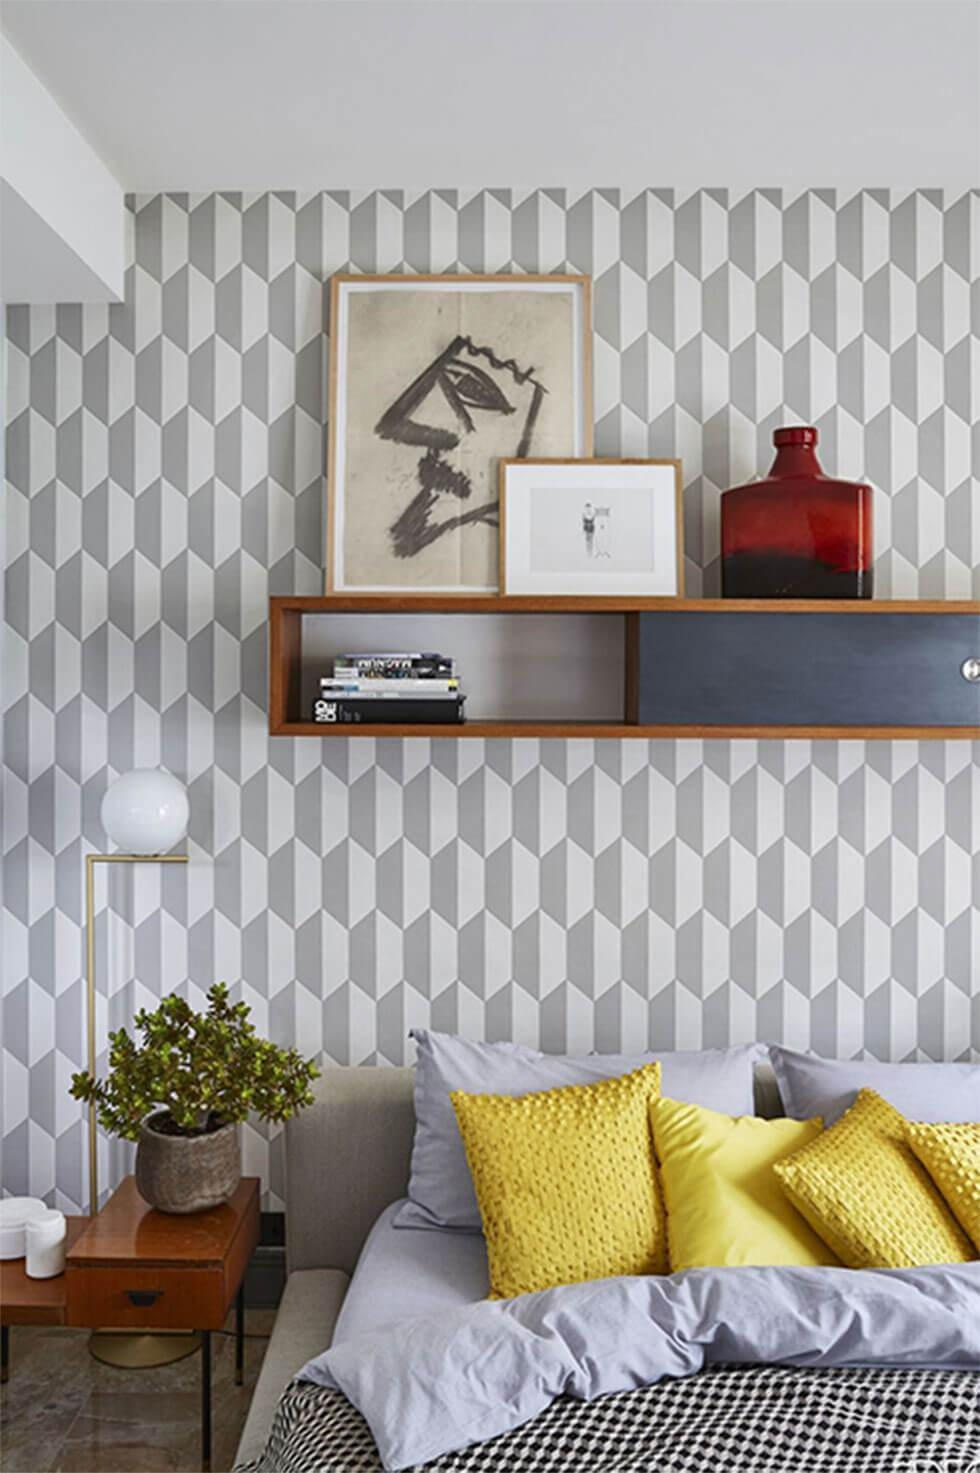 Bedroom with a grey patterned wall.